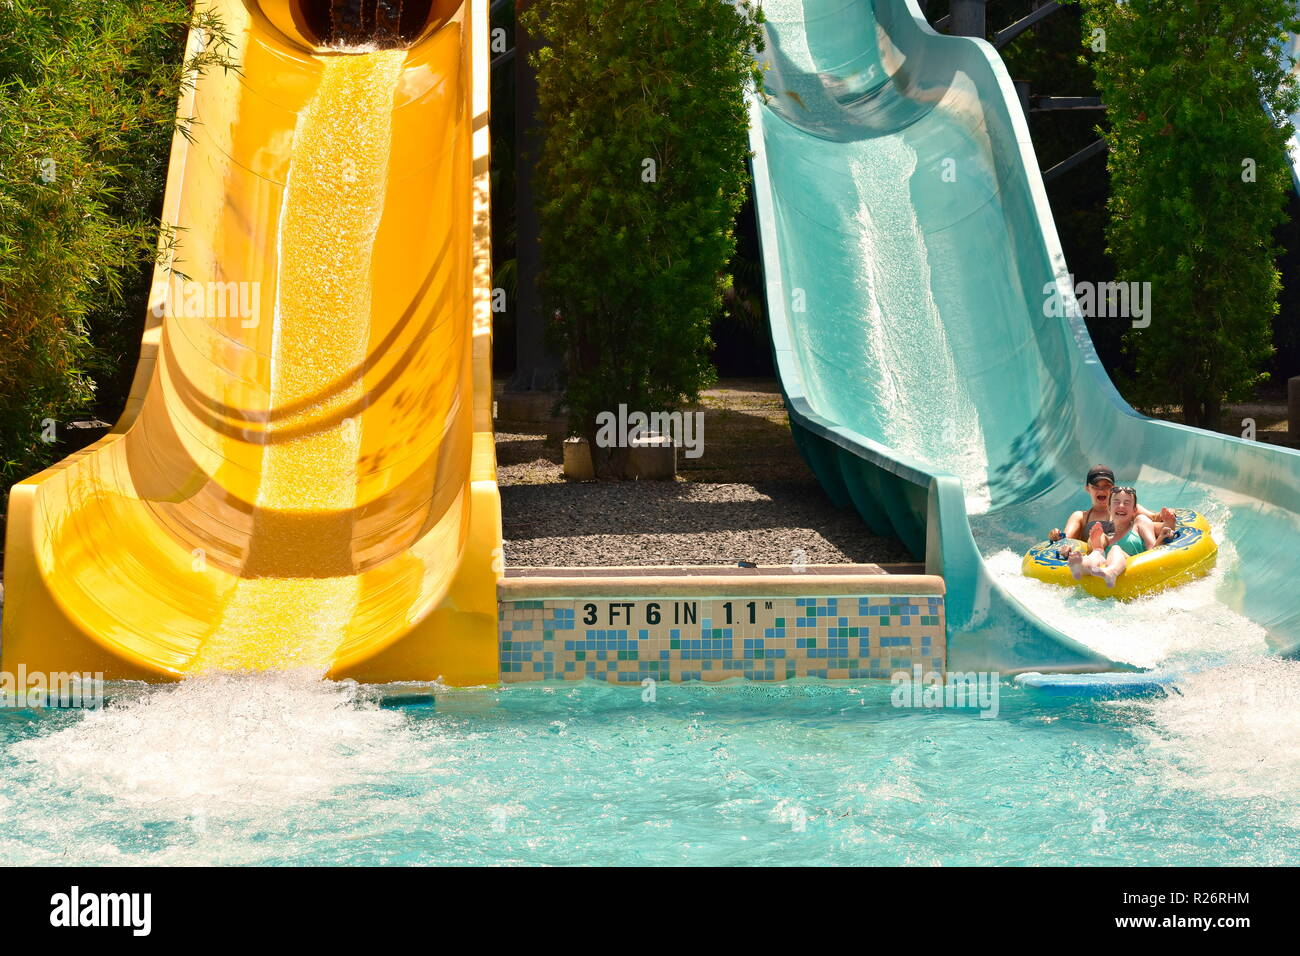 Orlando, Florida. October 26, 2018  Little girls colorful slide water ride at Water Park in International Drive area. - Stock Image